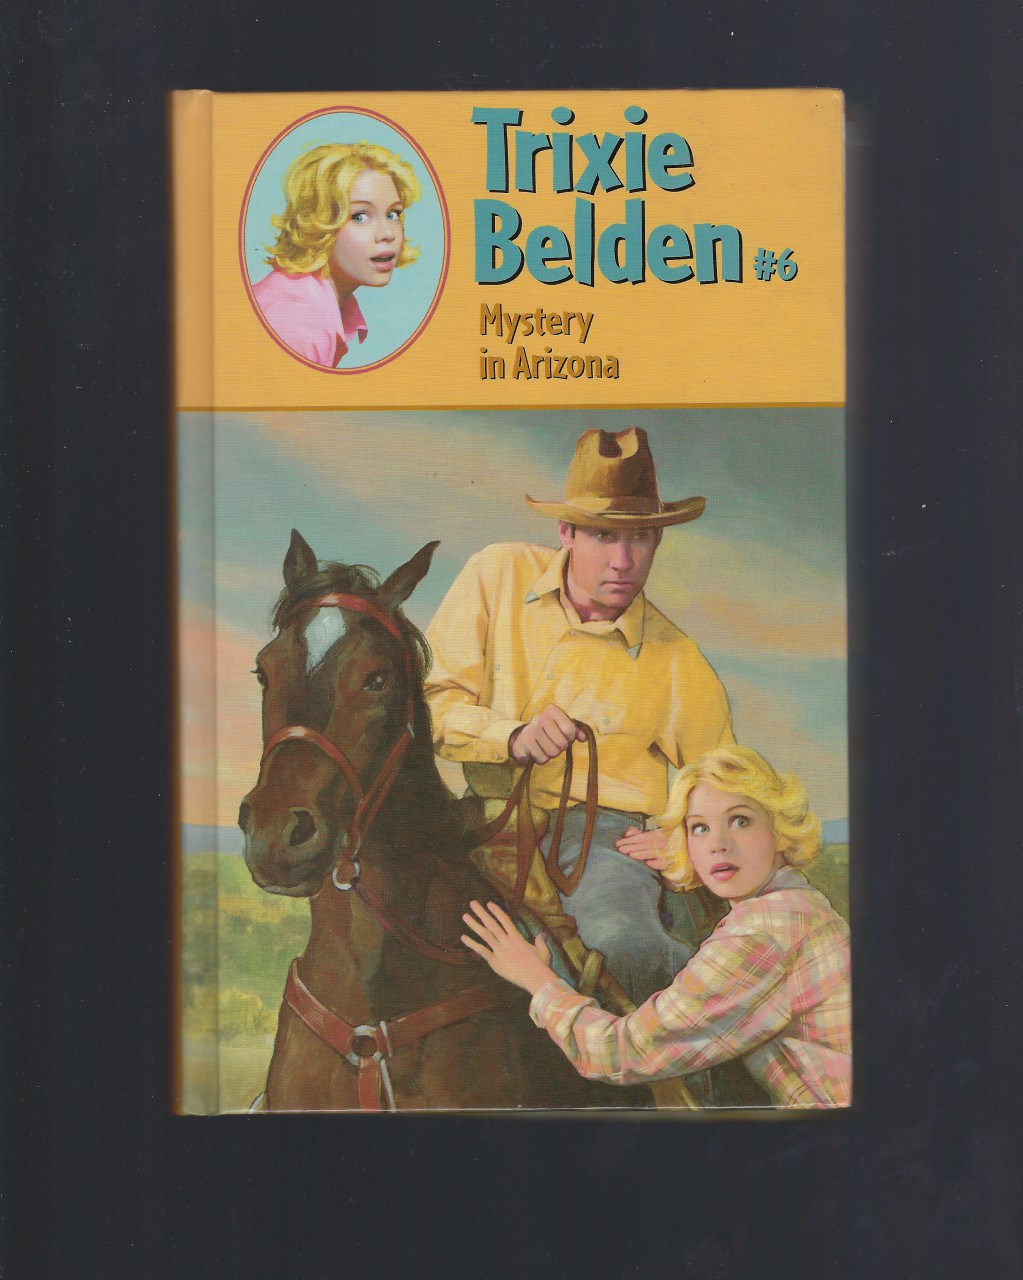 The Mystery in Arizona #6 Trixie Belden Hardback, Julie Campbell